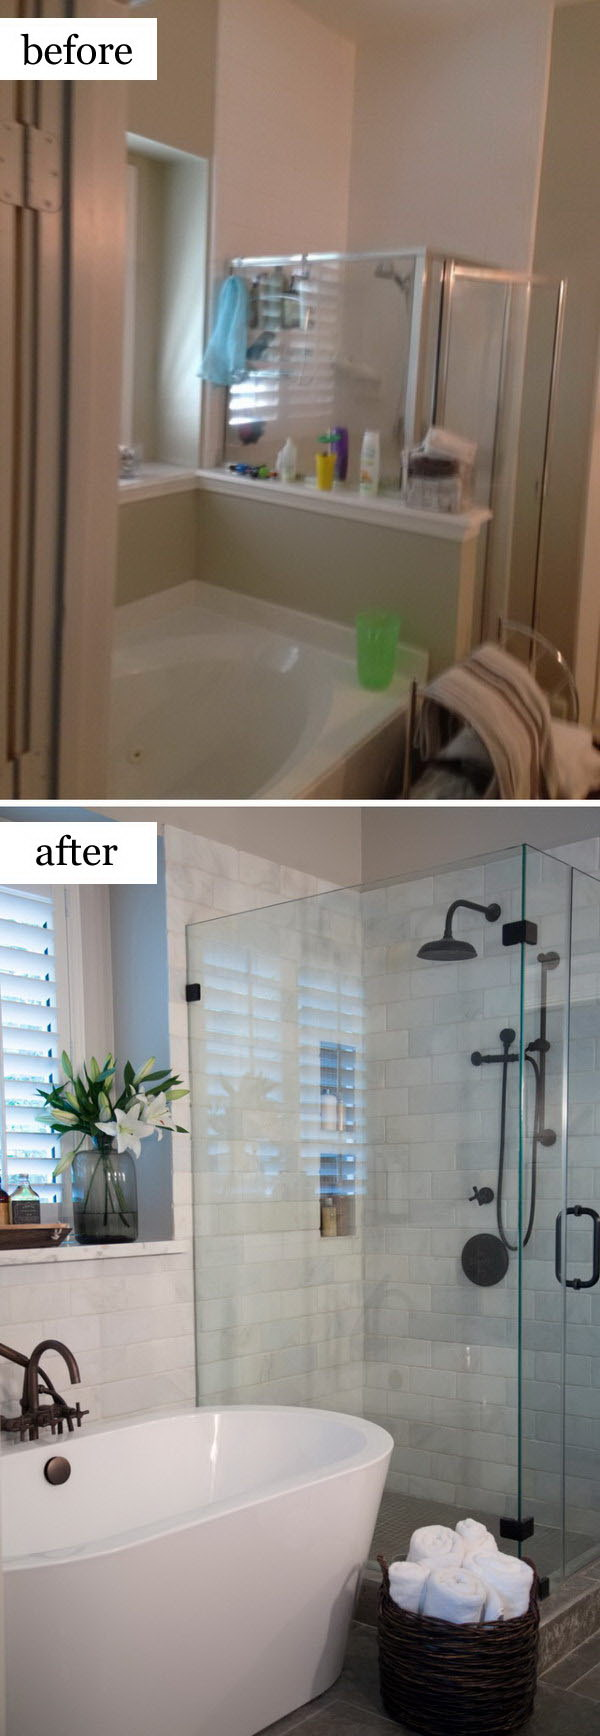 before and after makeovers 20 most beautiful bathroom before and after makeovers 20 most beautiful bathroom